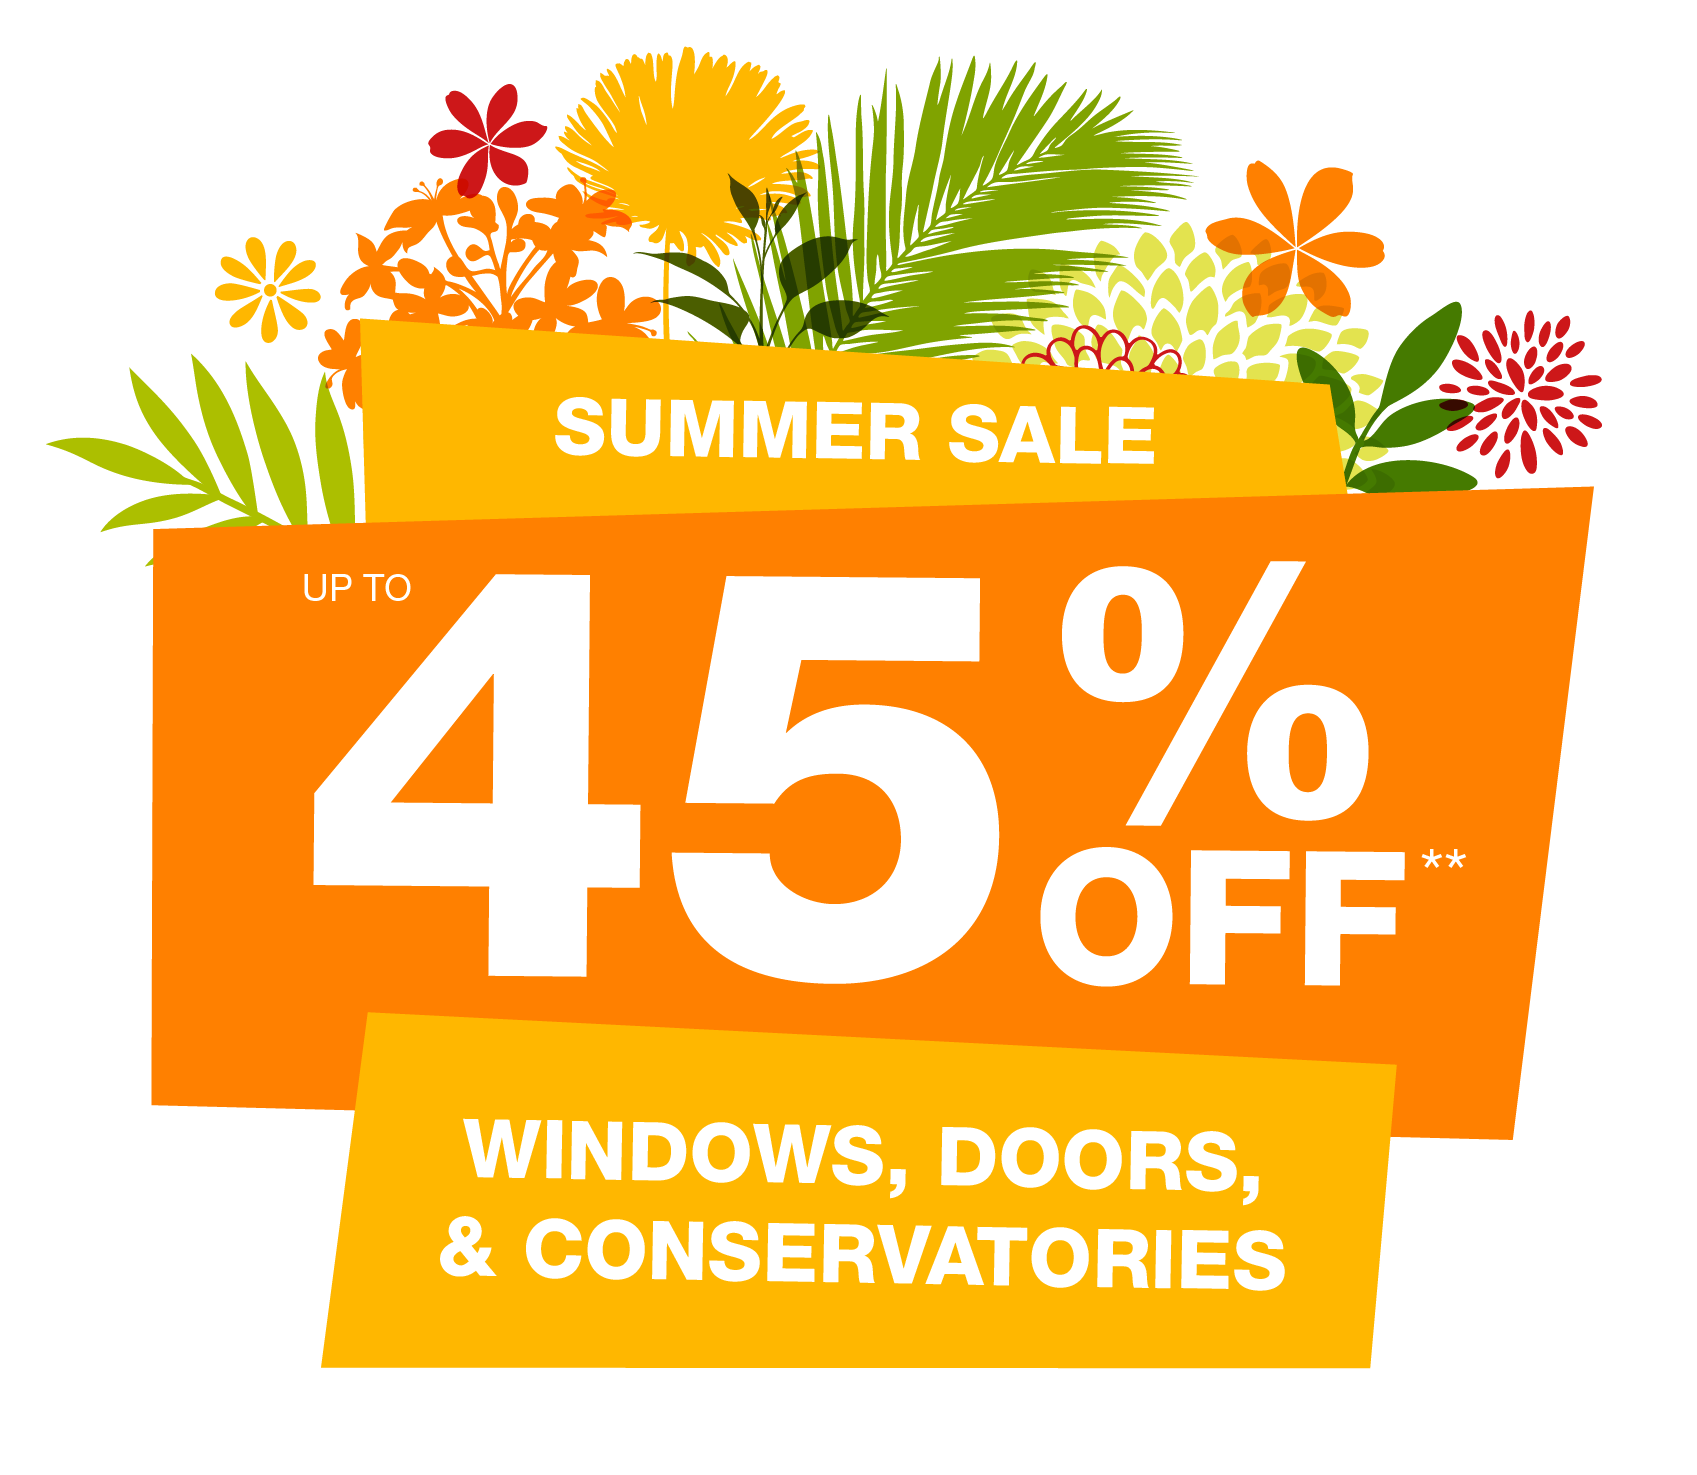 Up to 45% off Windows, Doors & Conservatories